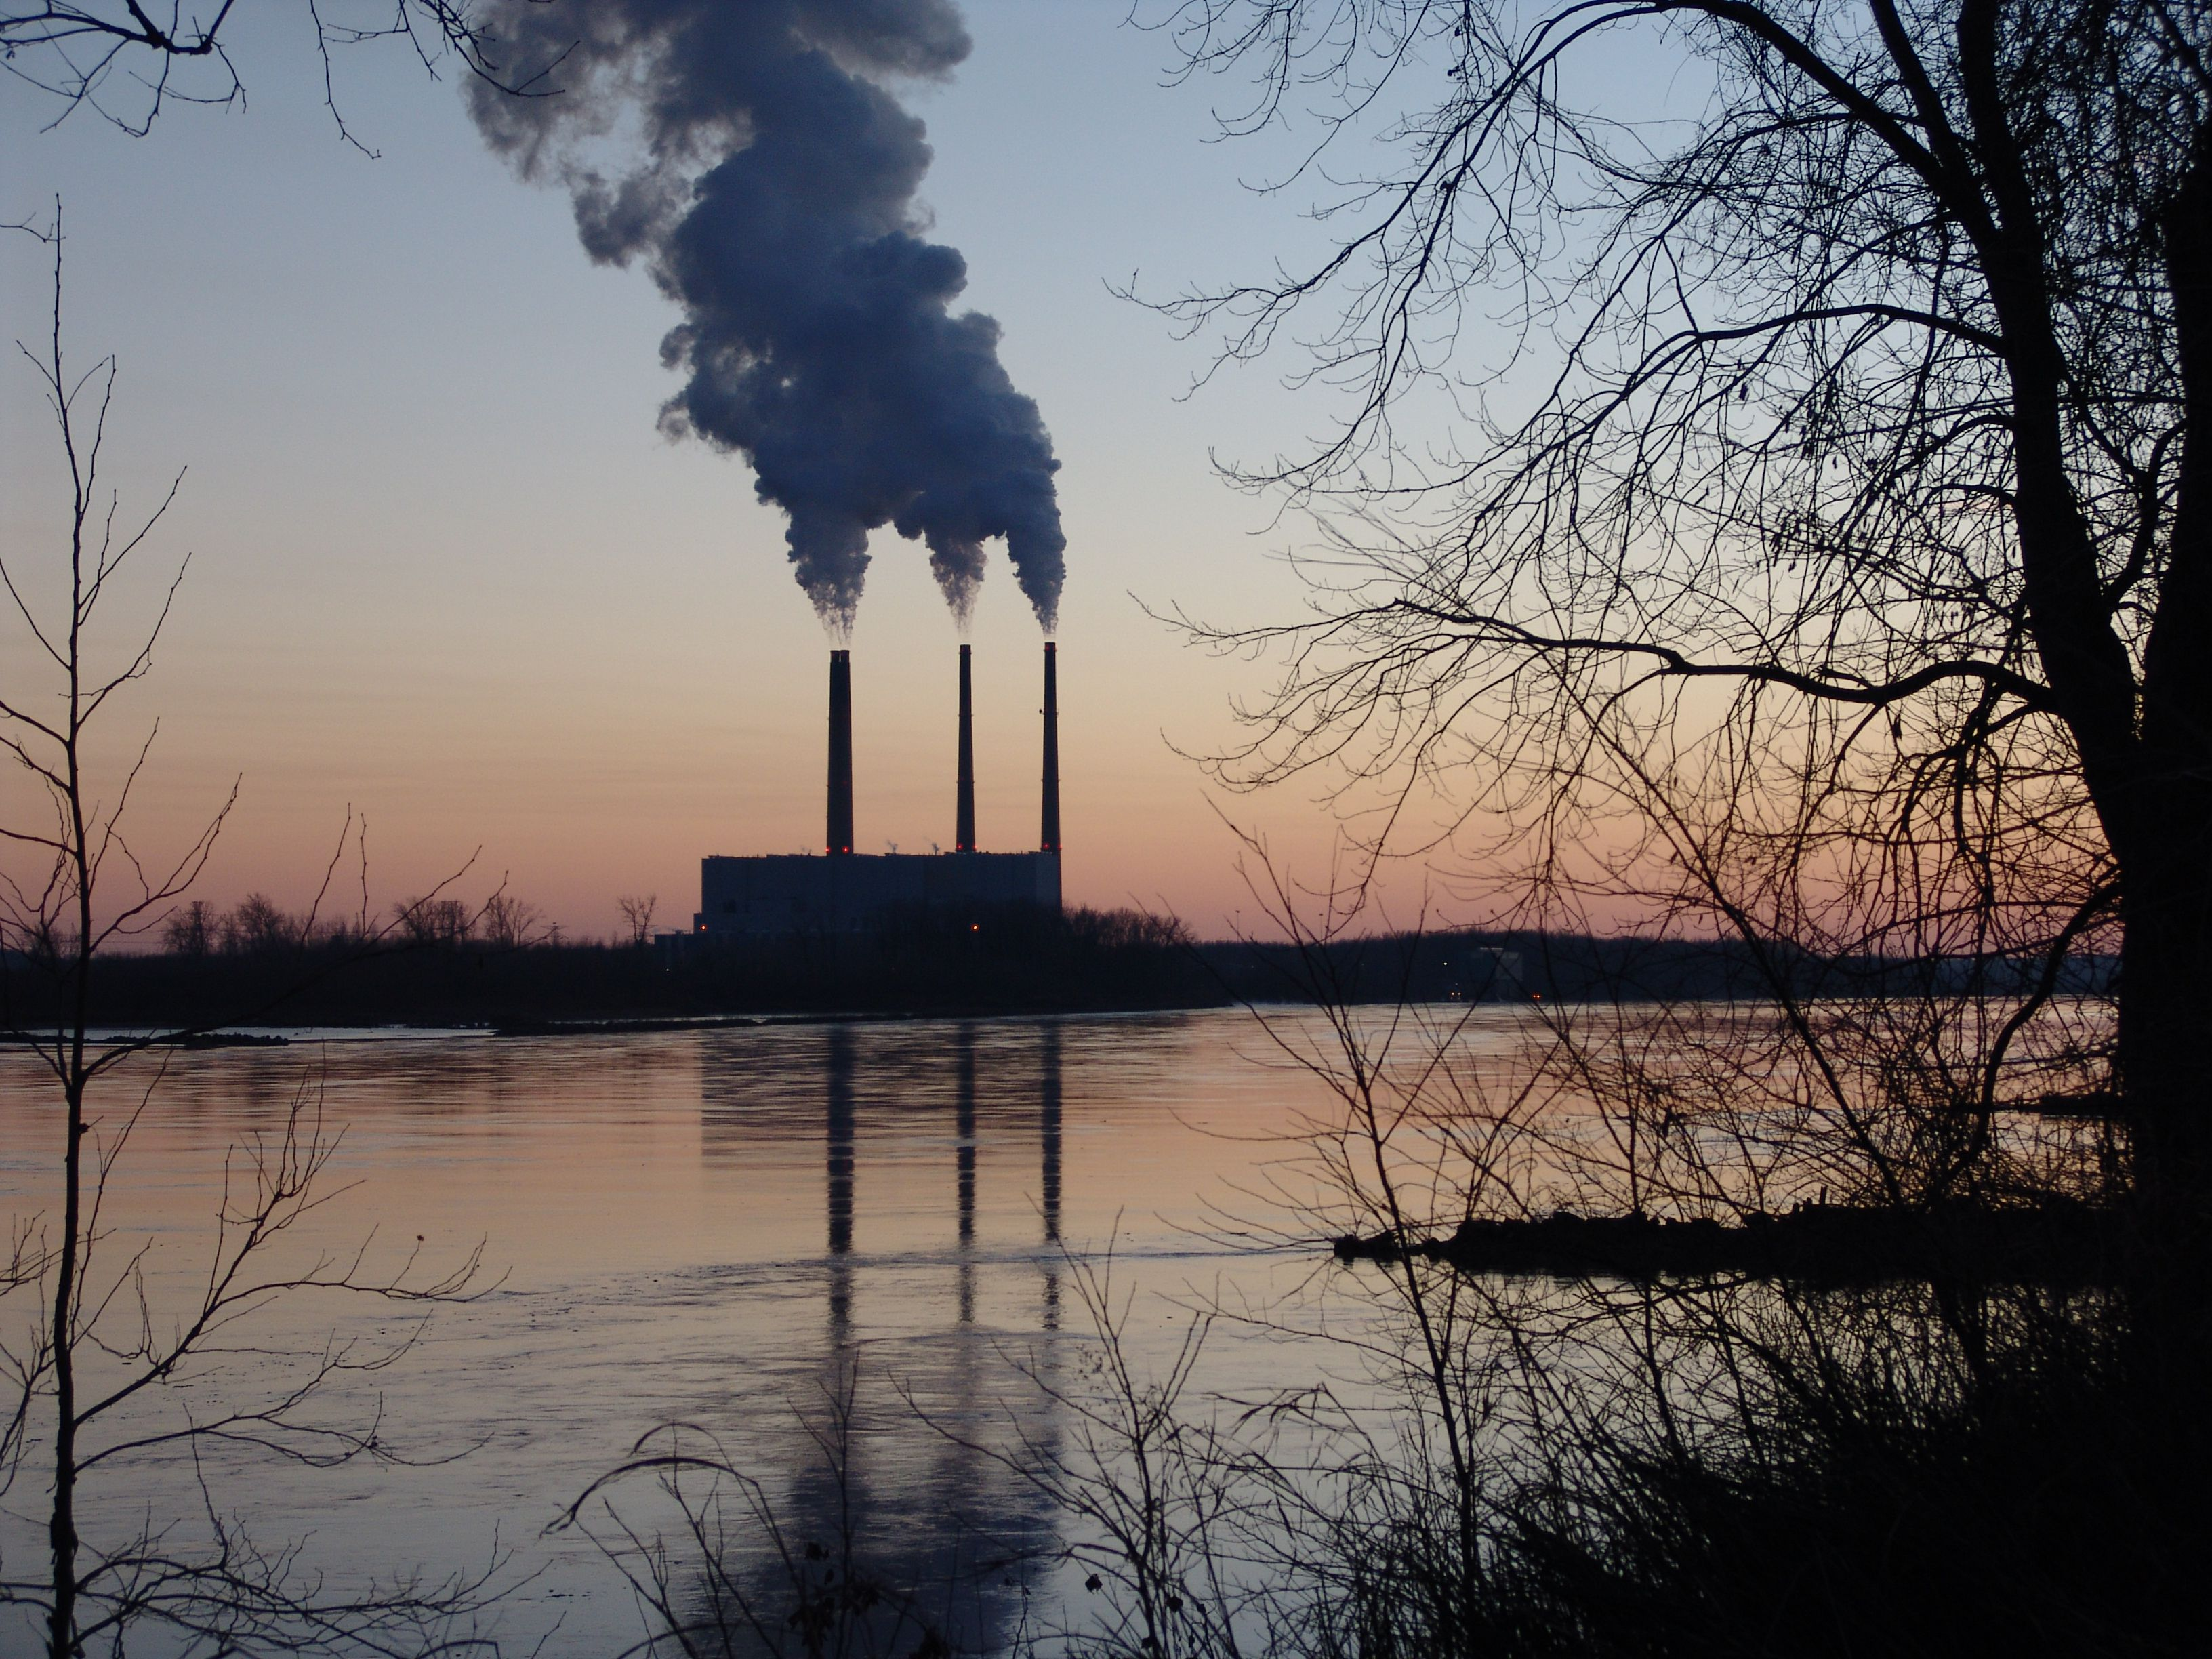 Coal Fired Power Plant National Geographic Society